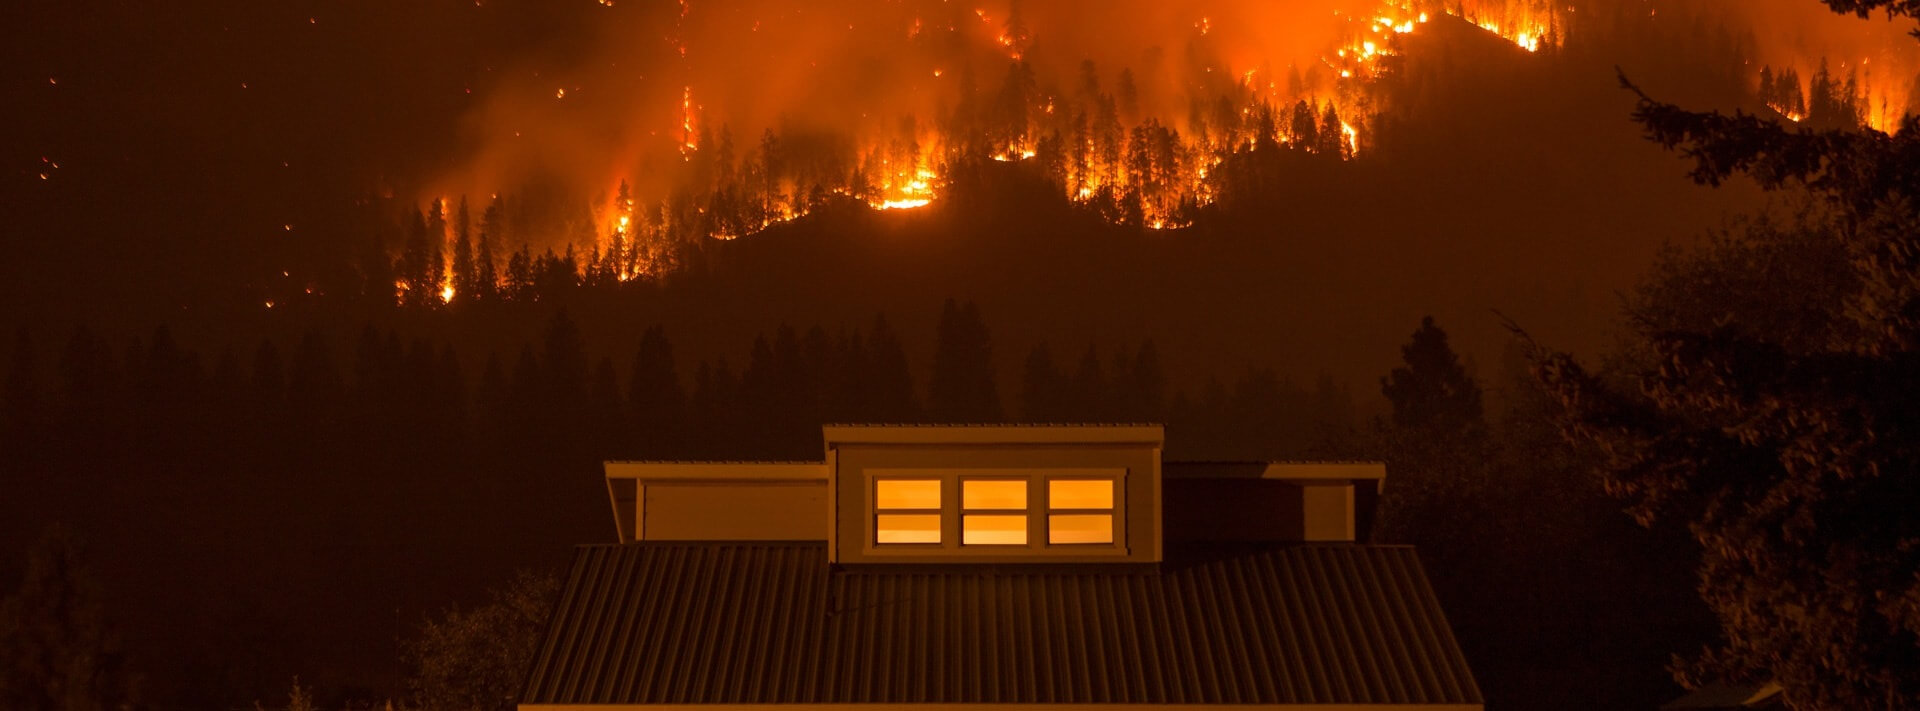 Forest Fire Home Protection